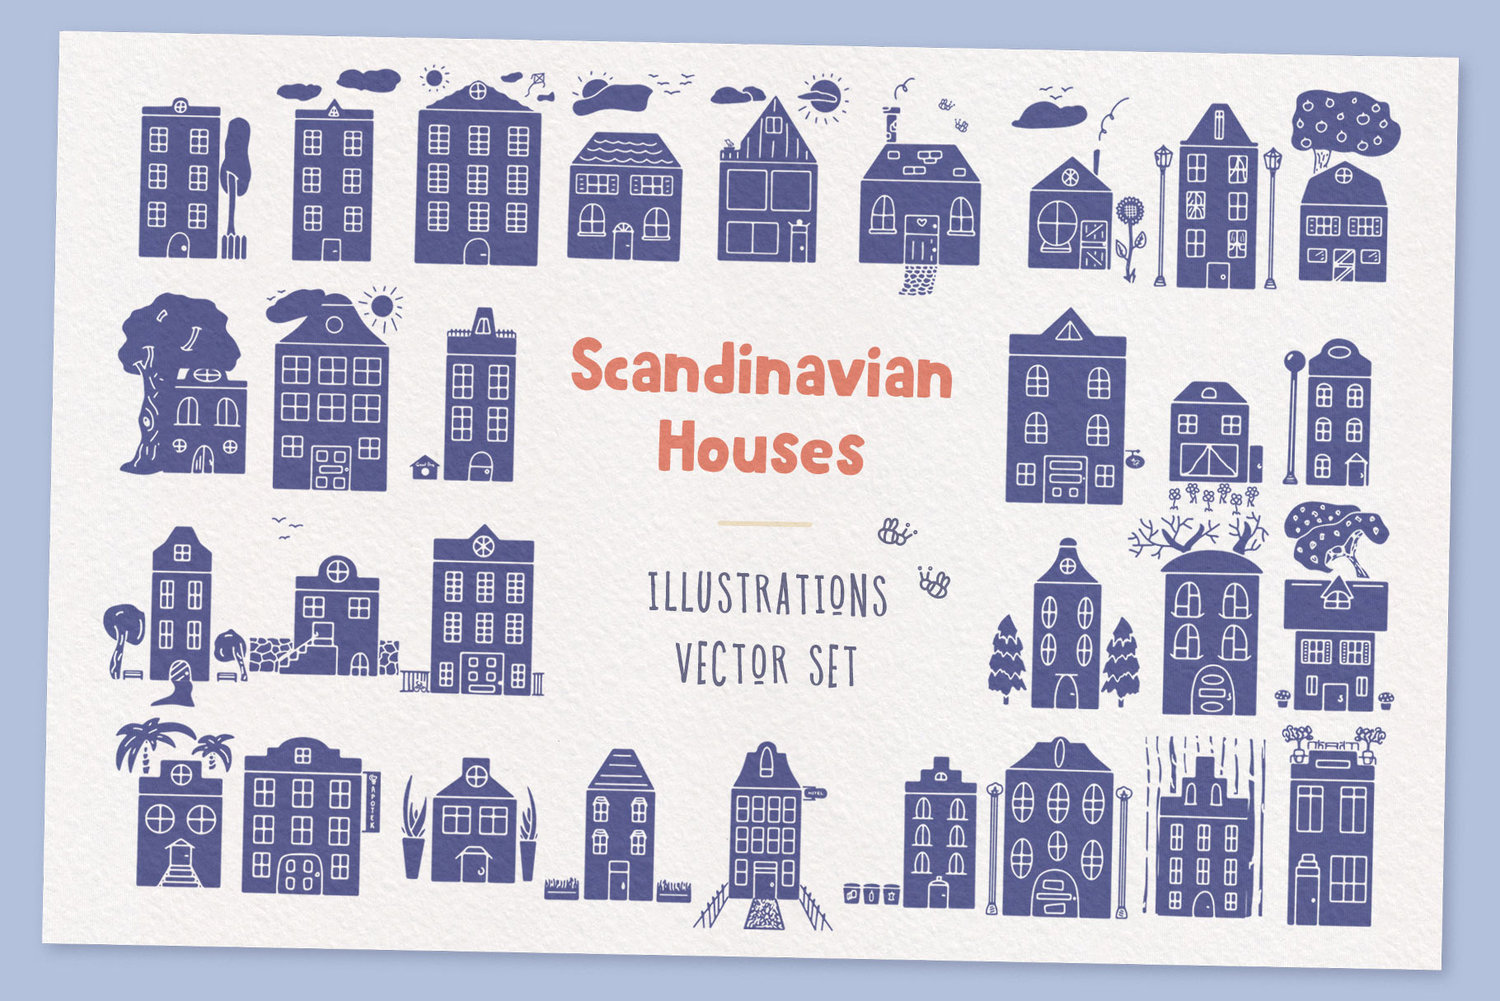 Scandinavian Houses Vector Images